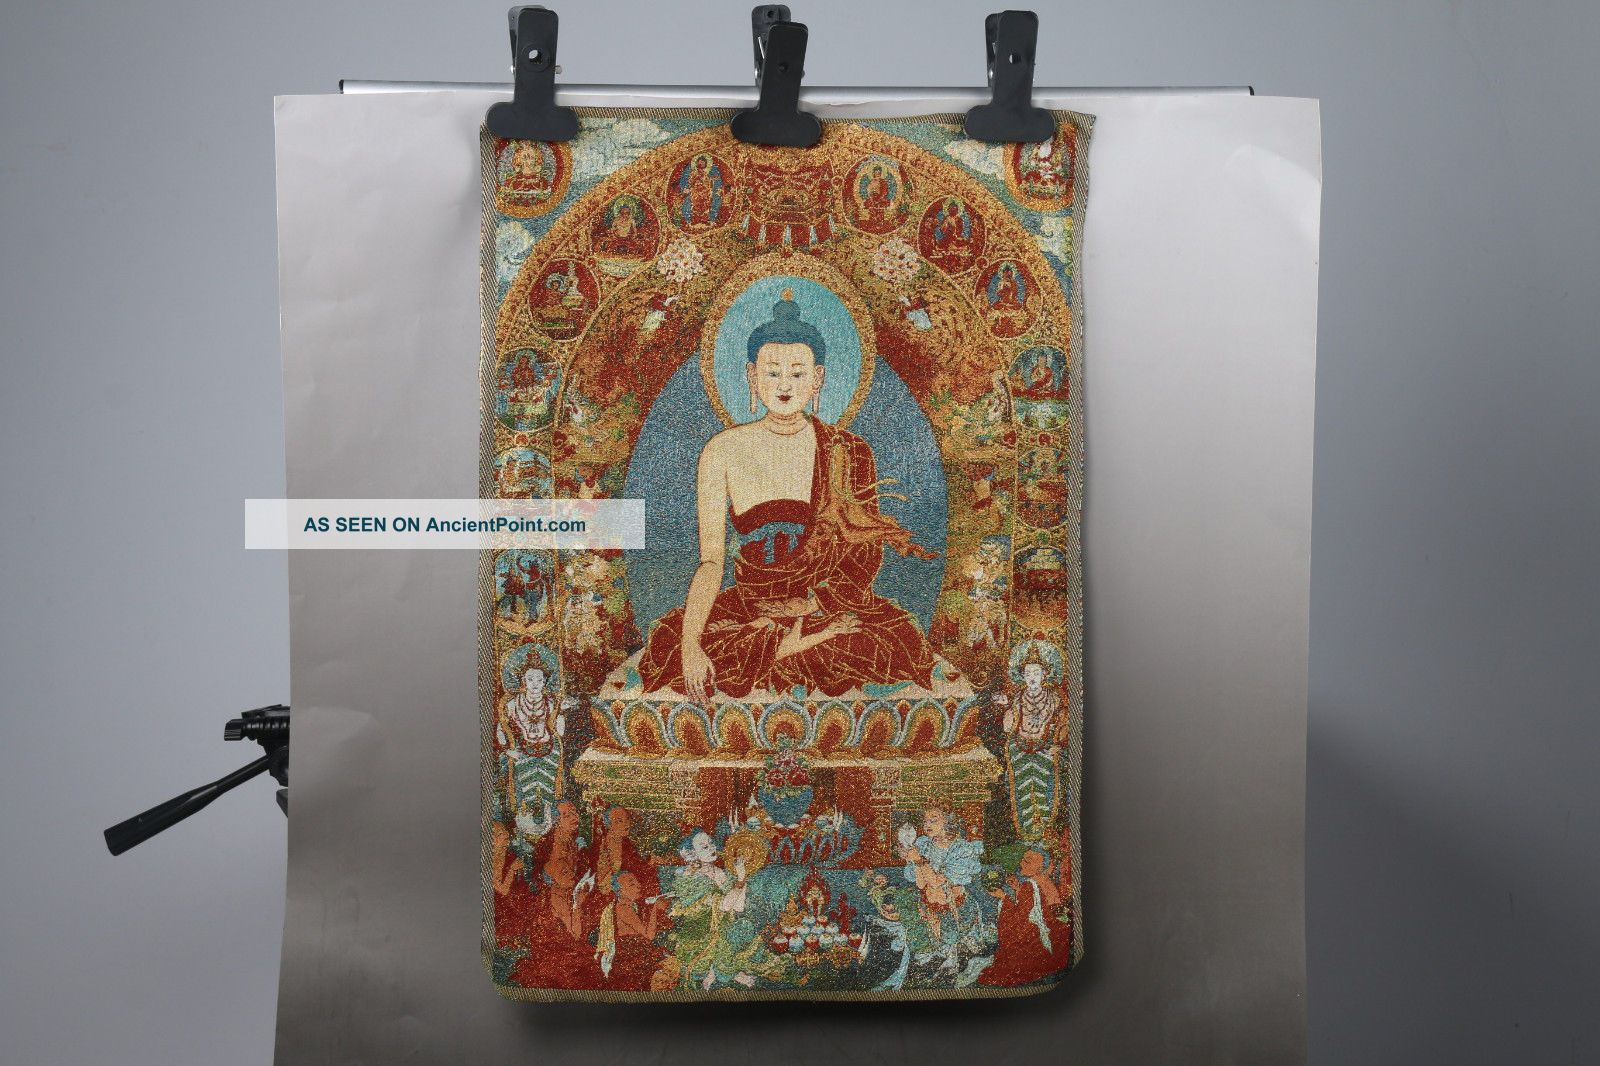 Tibet Silk Hand Painted Buddhism Painting Thangka H648 Paintings & Scrolls photo